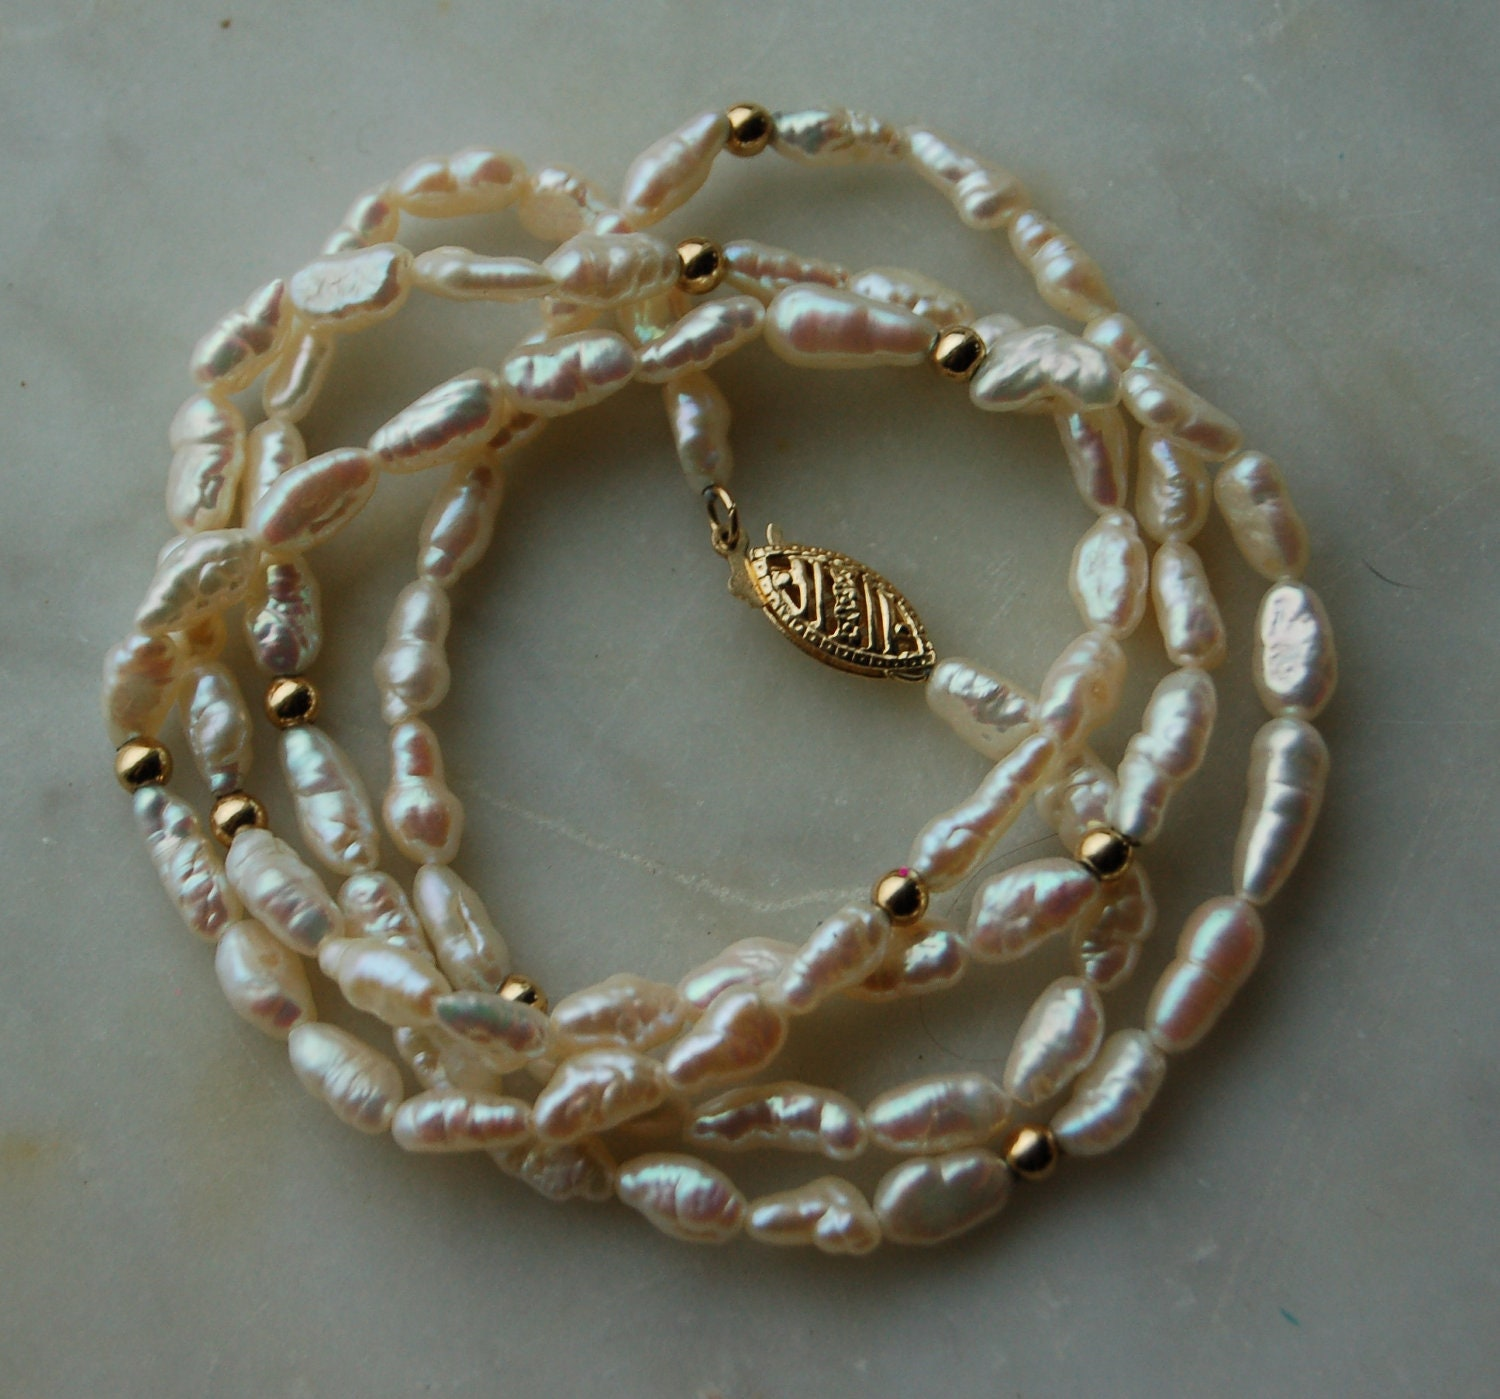 14k Gold White Freshwater Pearl Necklace With 10 Pieces Of 14k